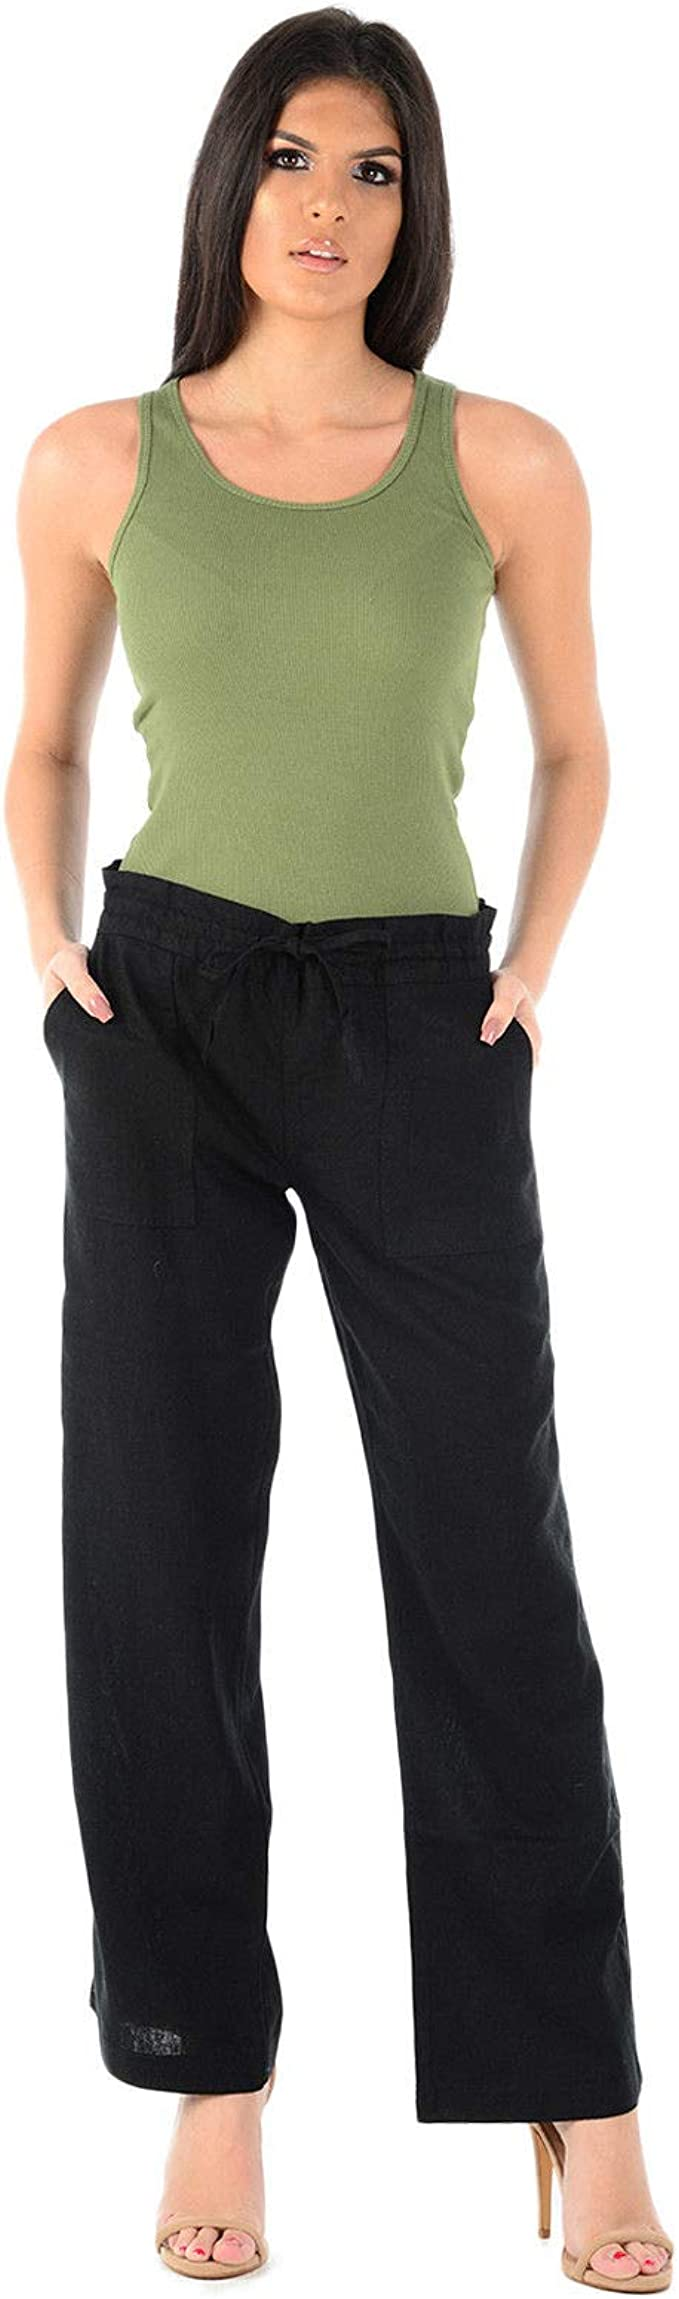 Womens Loose Fit Trousers Summer Elasticated Waist